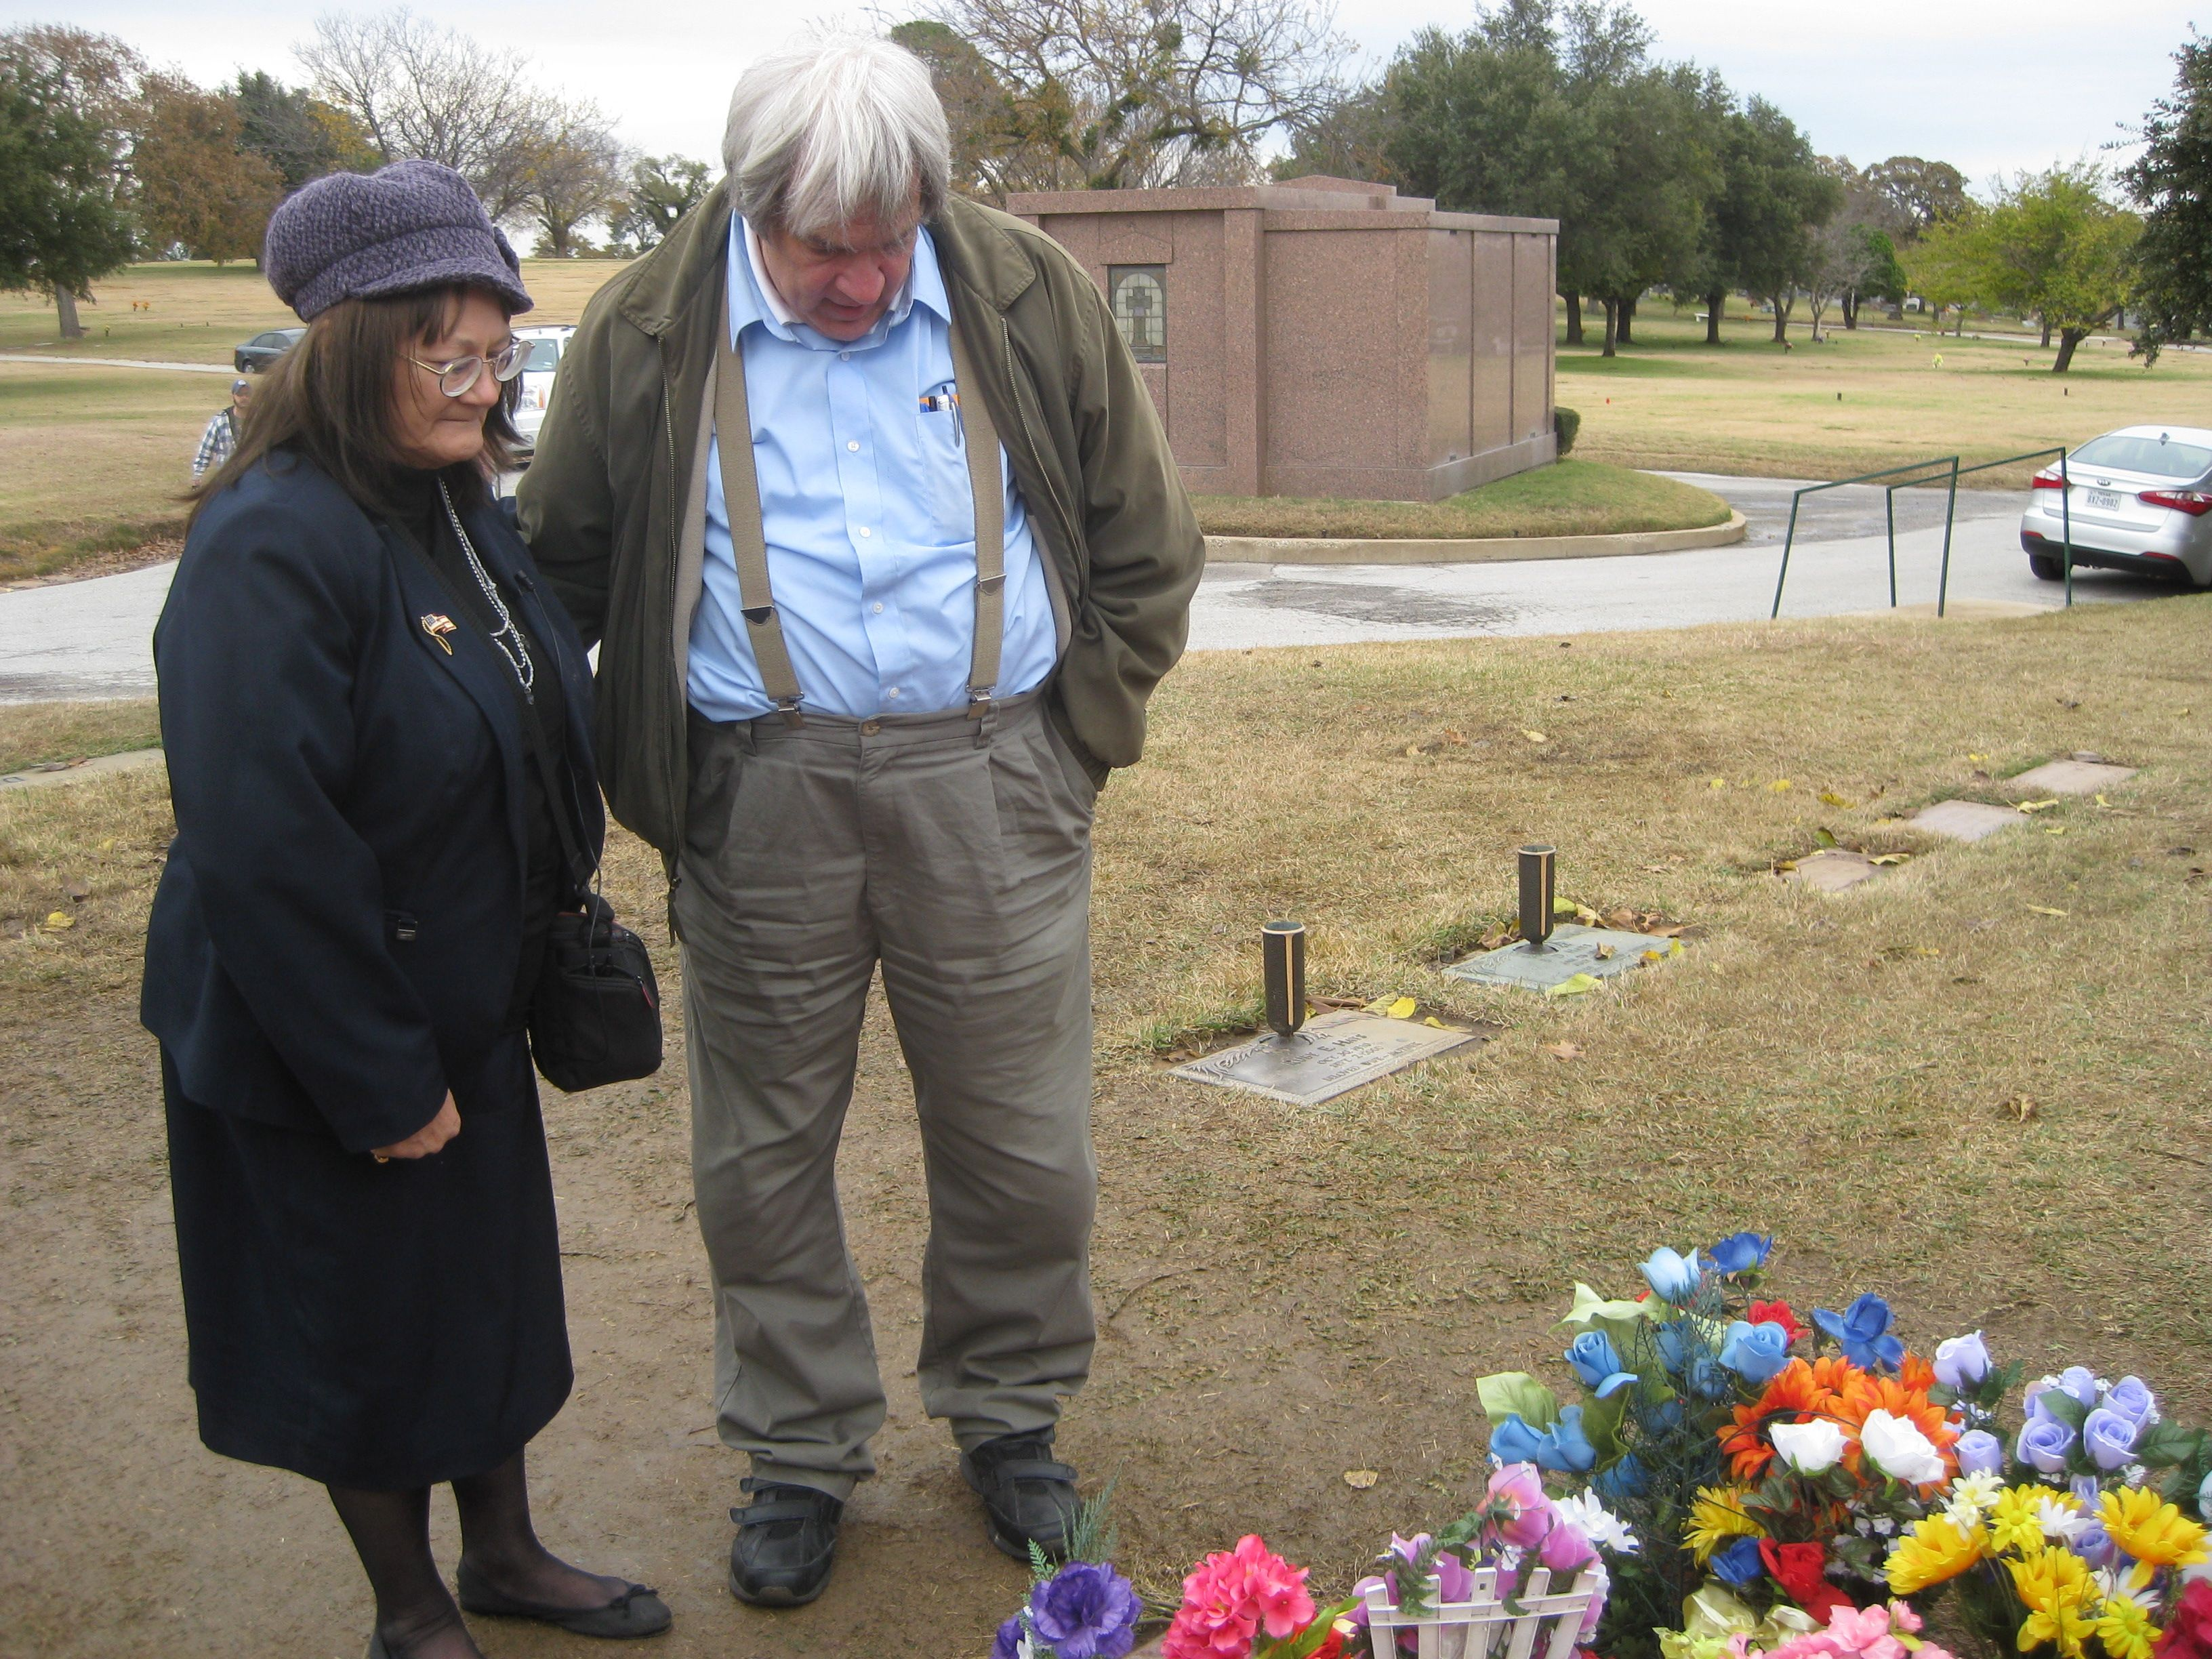 Judyth Baker and Robert Grodin at Oswald gravesite (Wayne Madsen Photo, with permission)